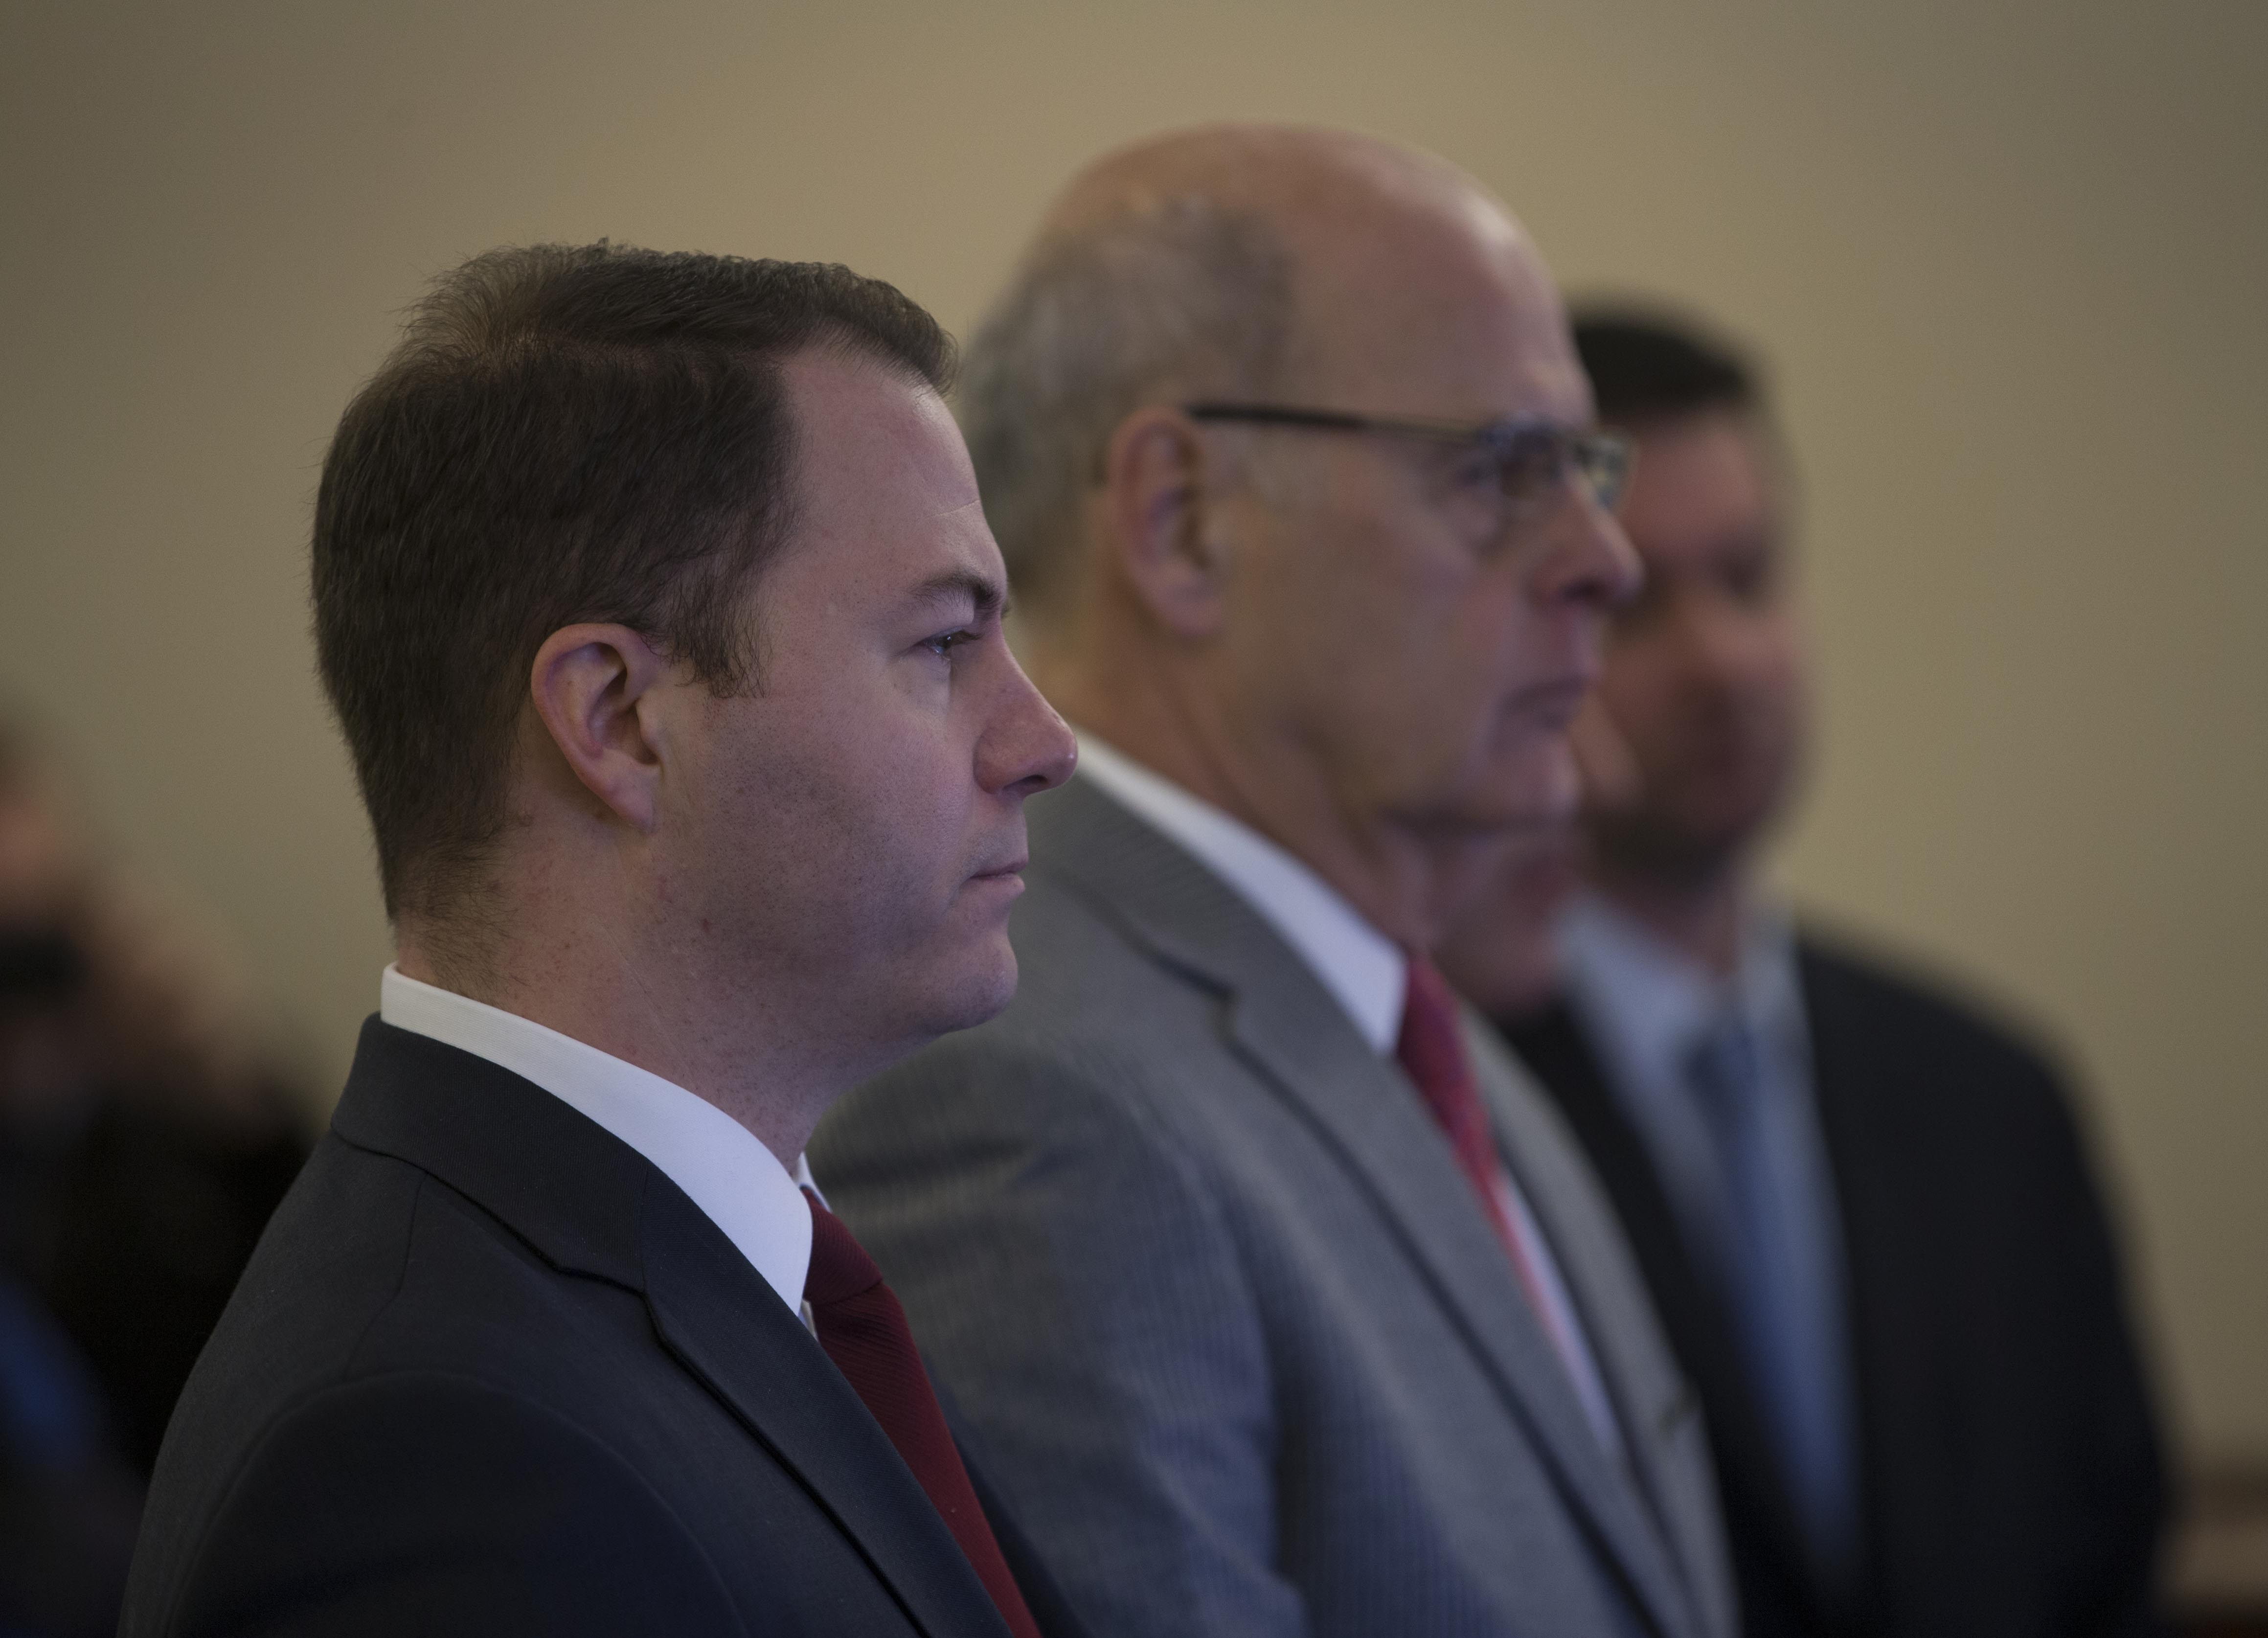 Sen. Robert Ortt. left, pleaded not guilty in Albany County Court Thursday. (Photo by Mike Groll)